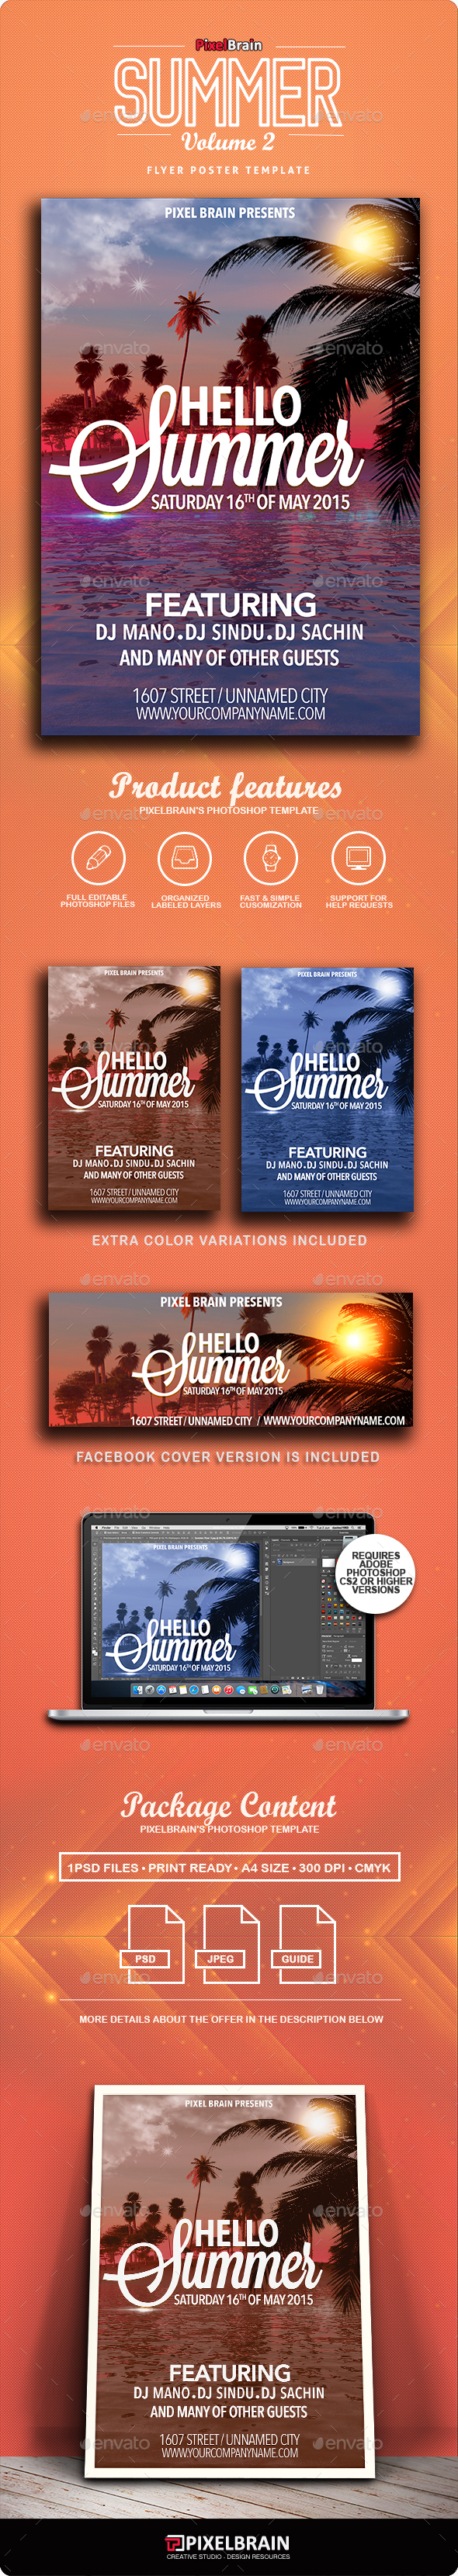 Summer Flyer/Poster Vol. 2 - Clubs & Parties Events